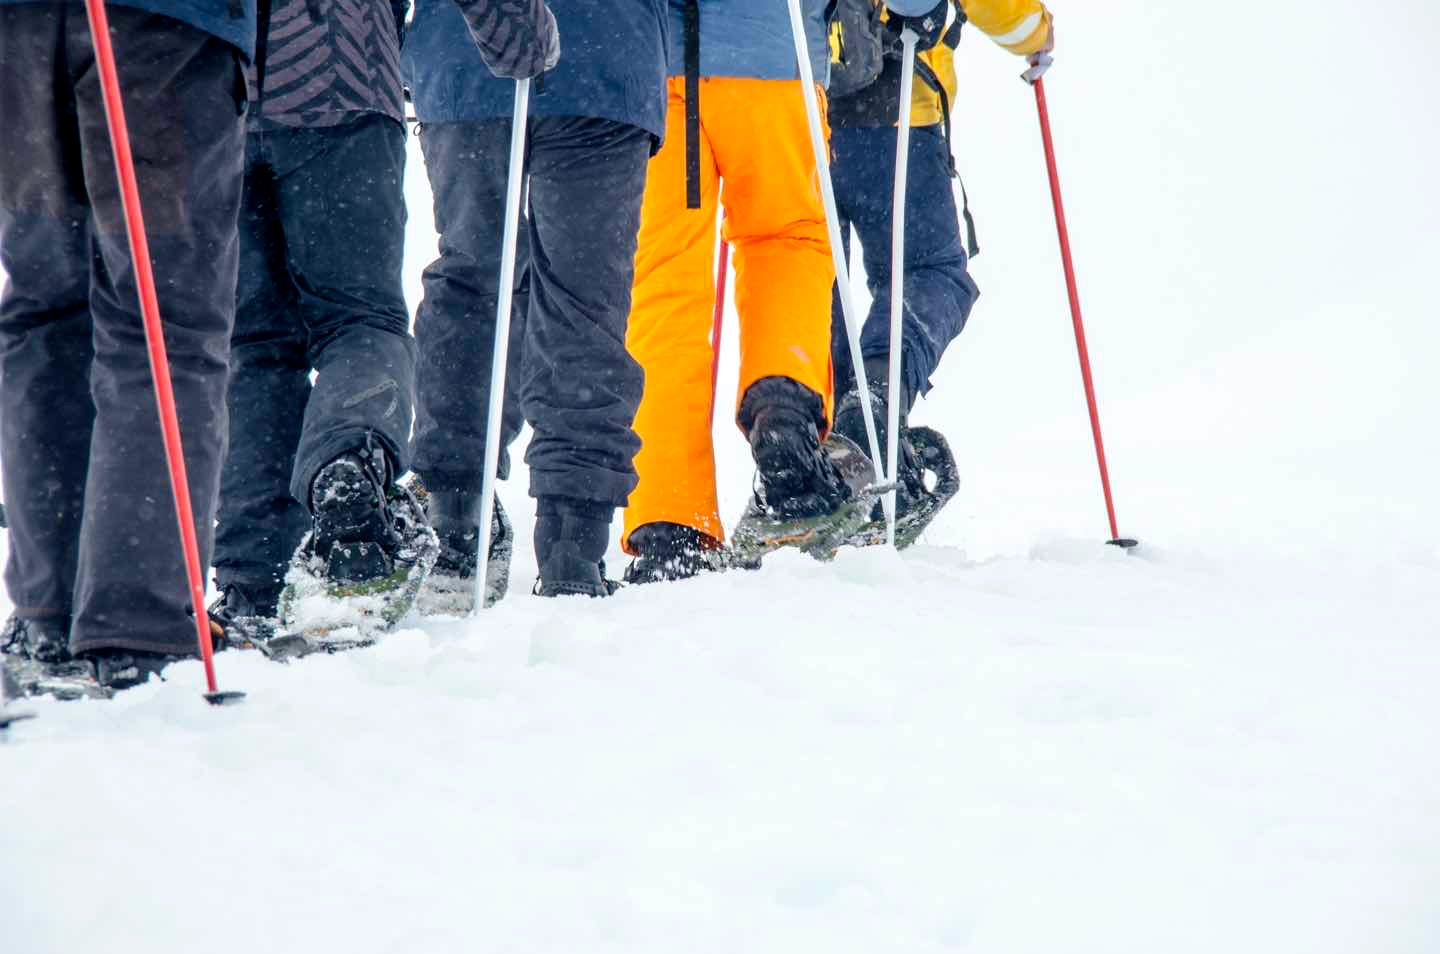 1/Snowshoeing up mountains